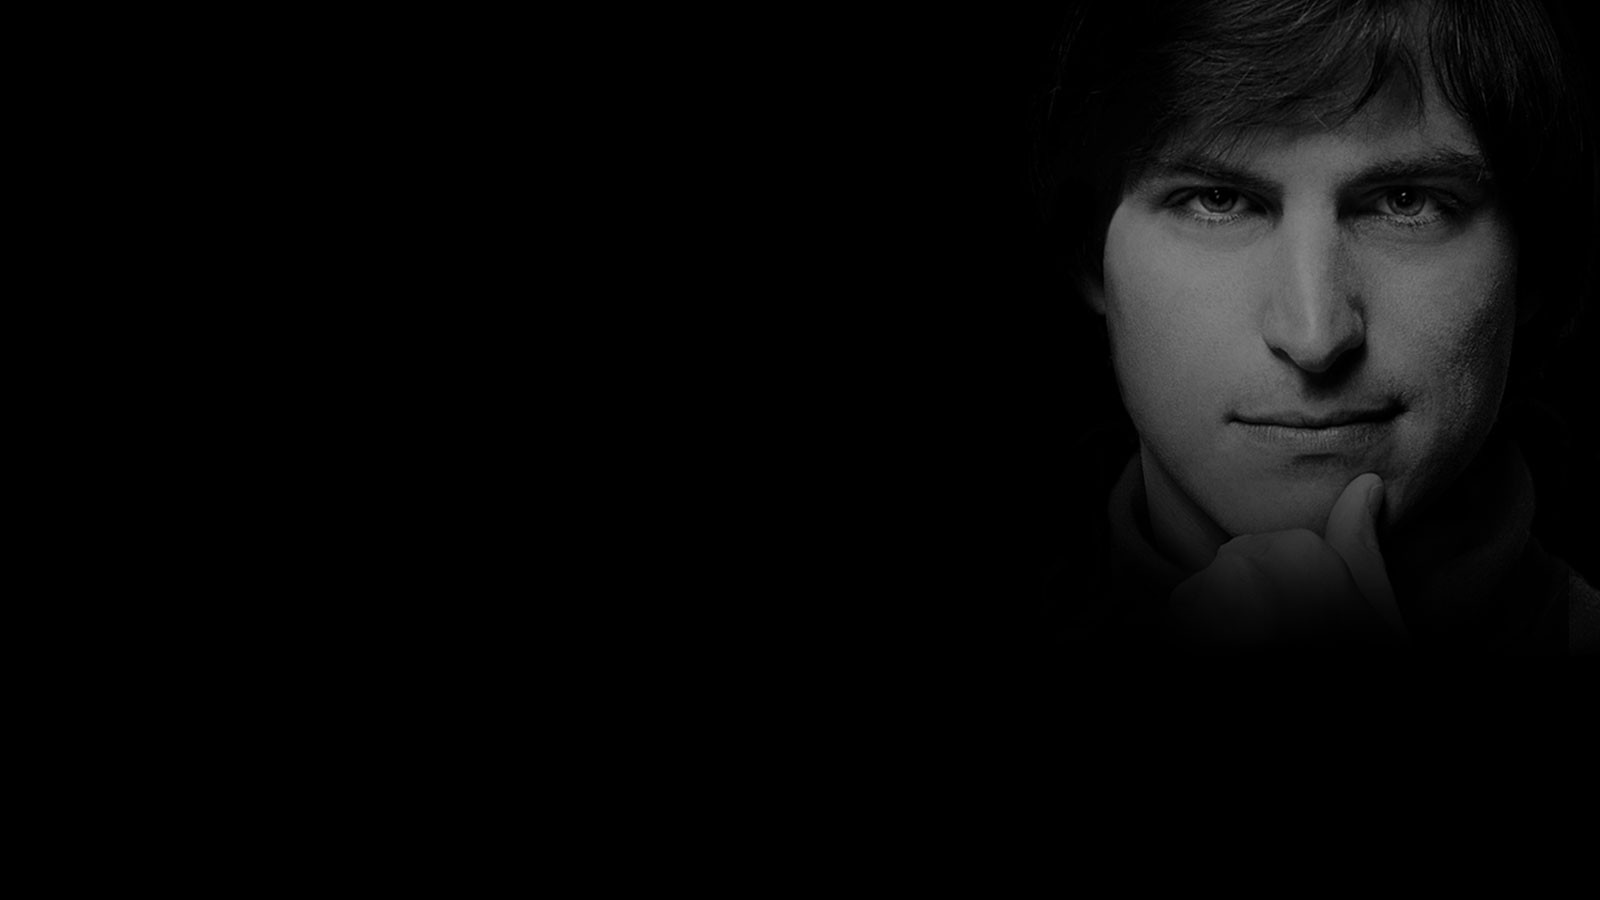 10 great quotes from Steve Jobs - CNN.com